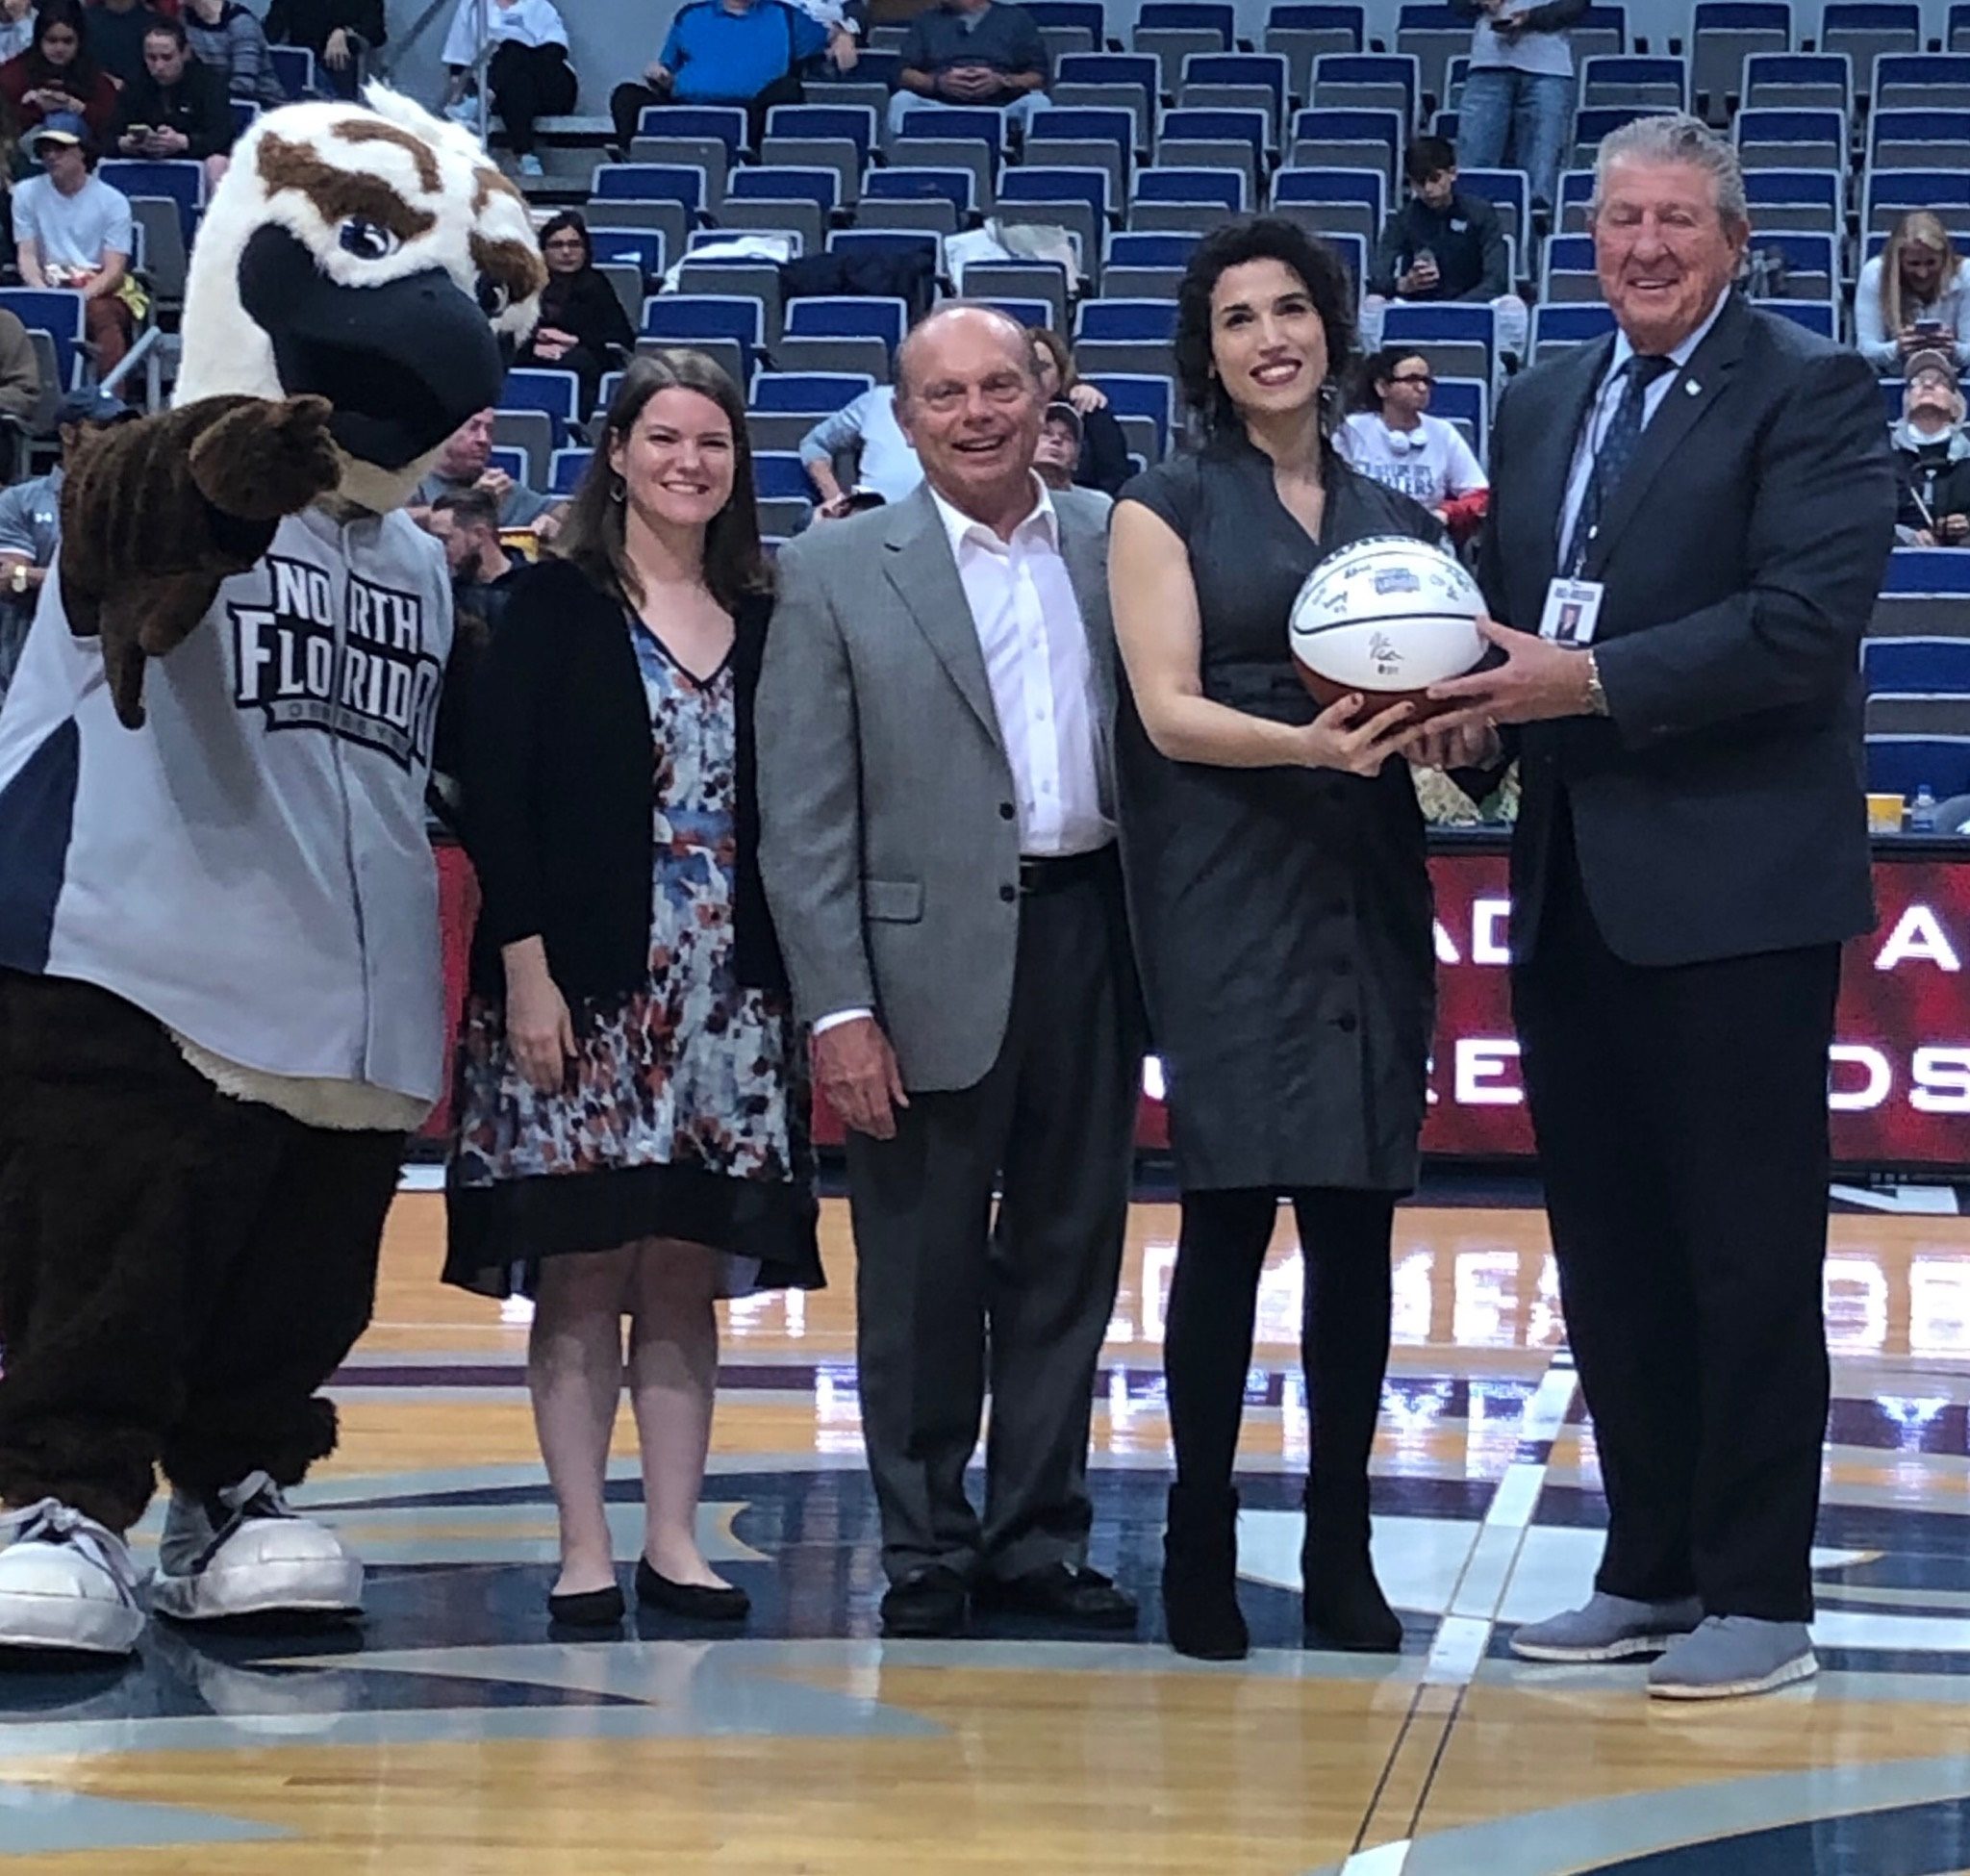 Josselyn Munoz presented with Student of the Year award 2019 on the basketball court